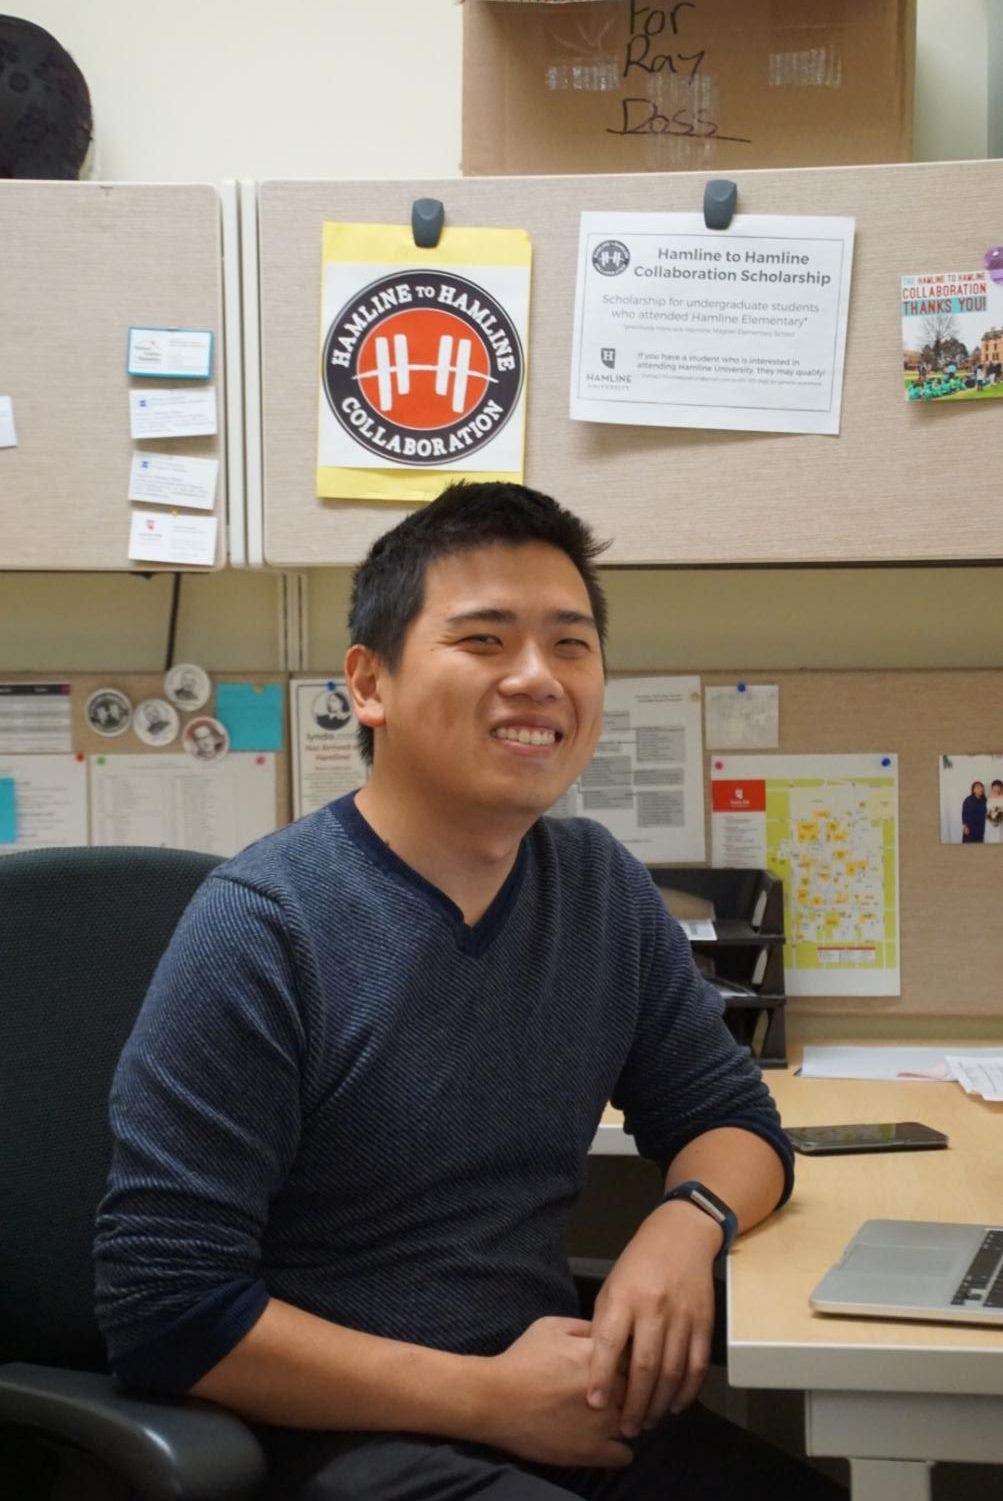 yang sitings at his new desk and poses for a picture.